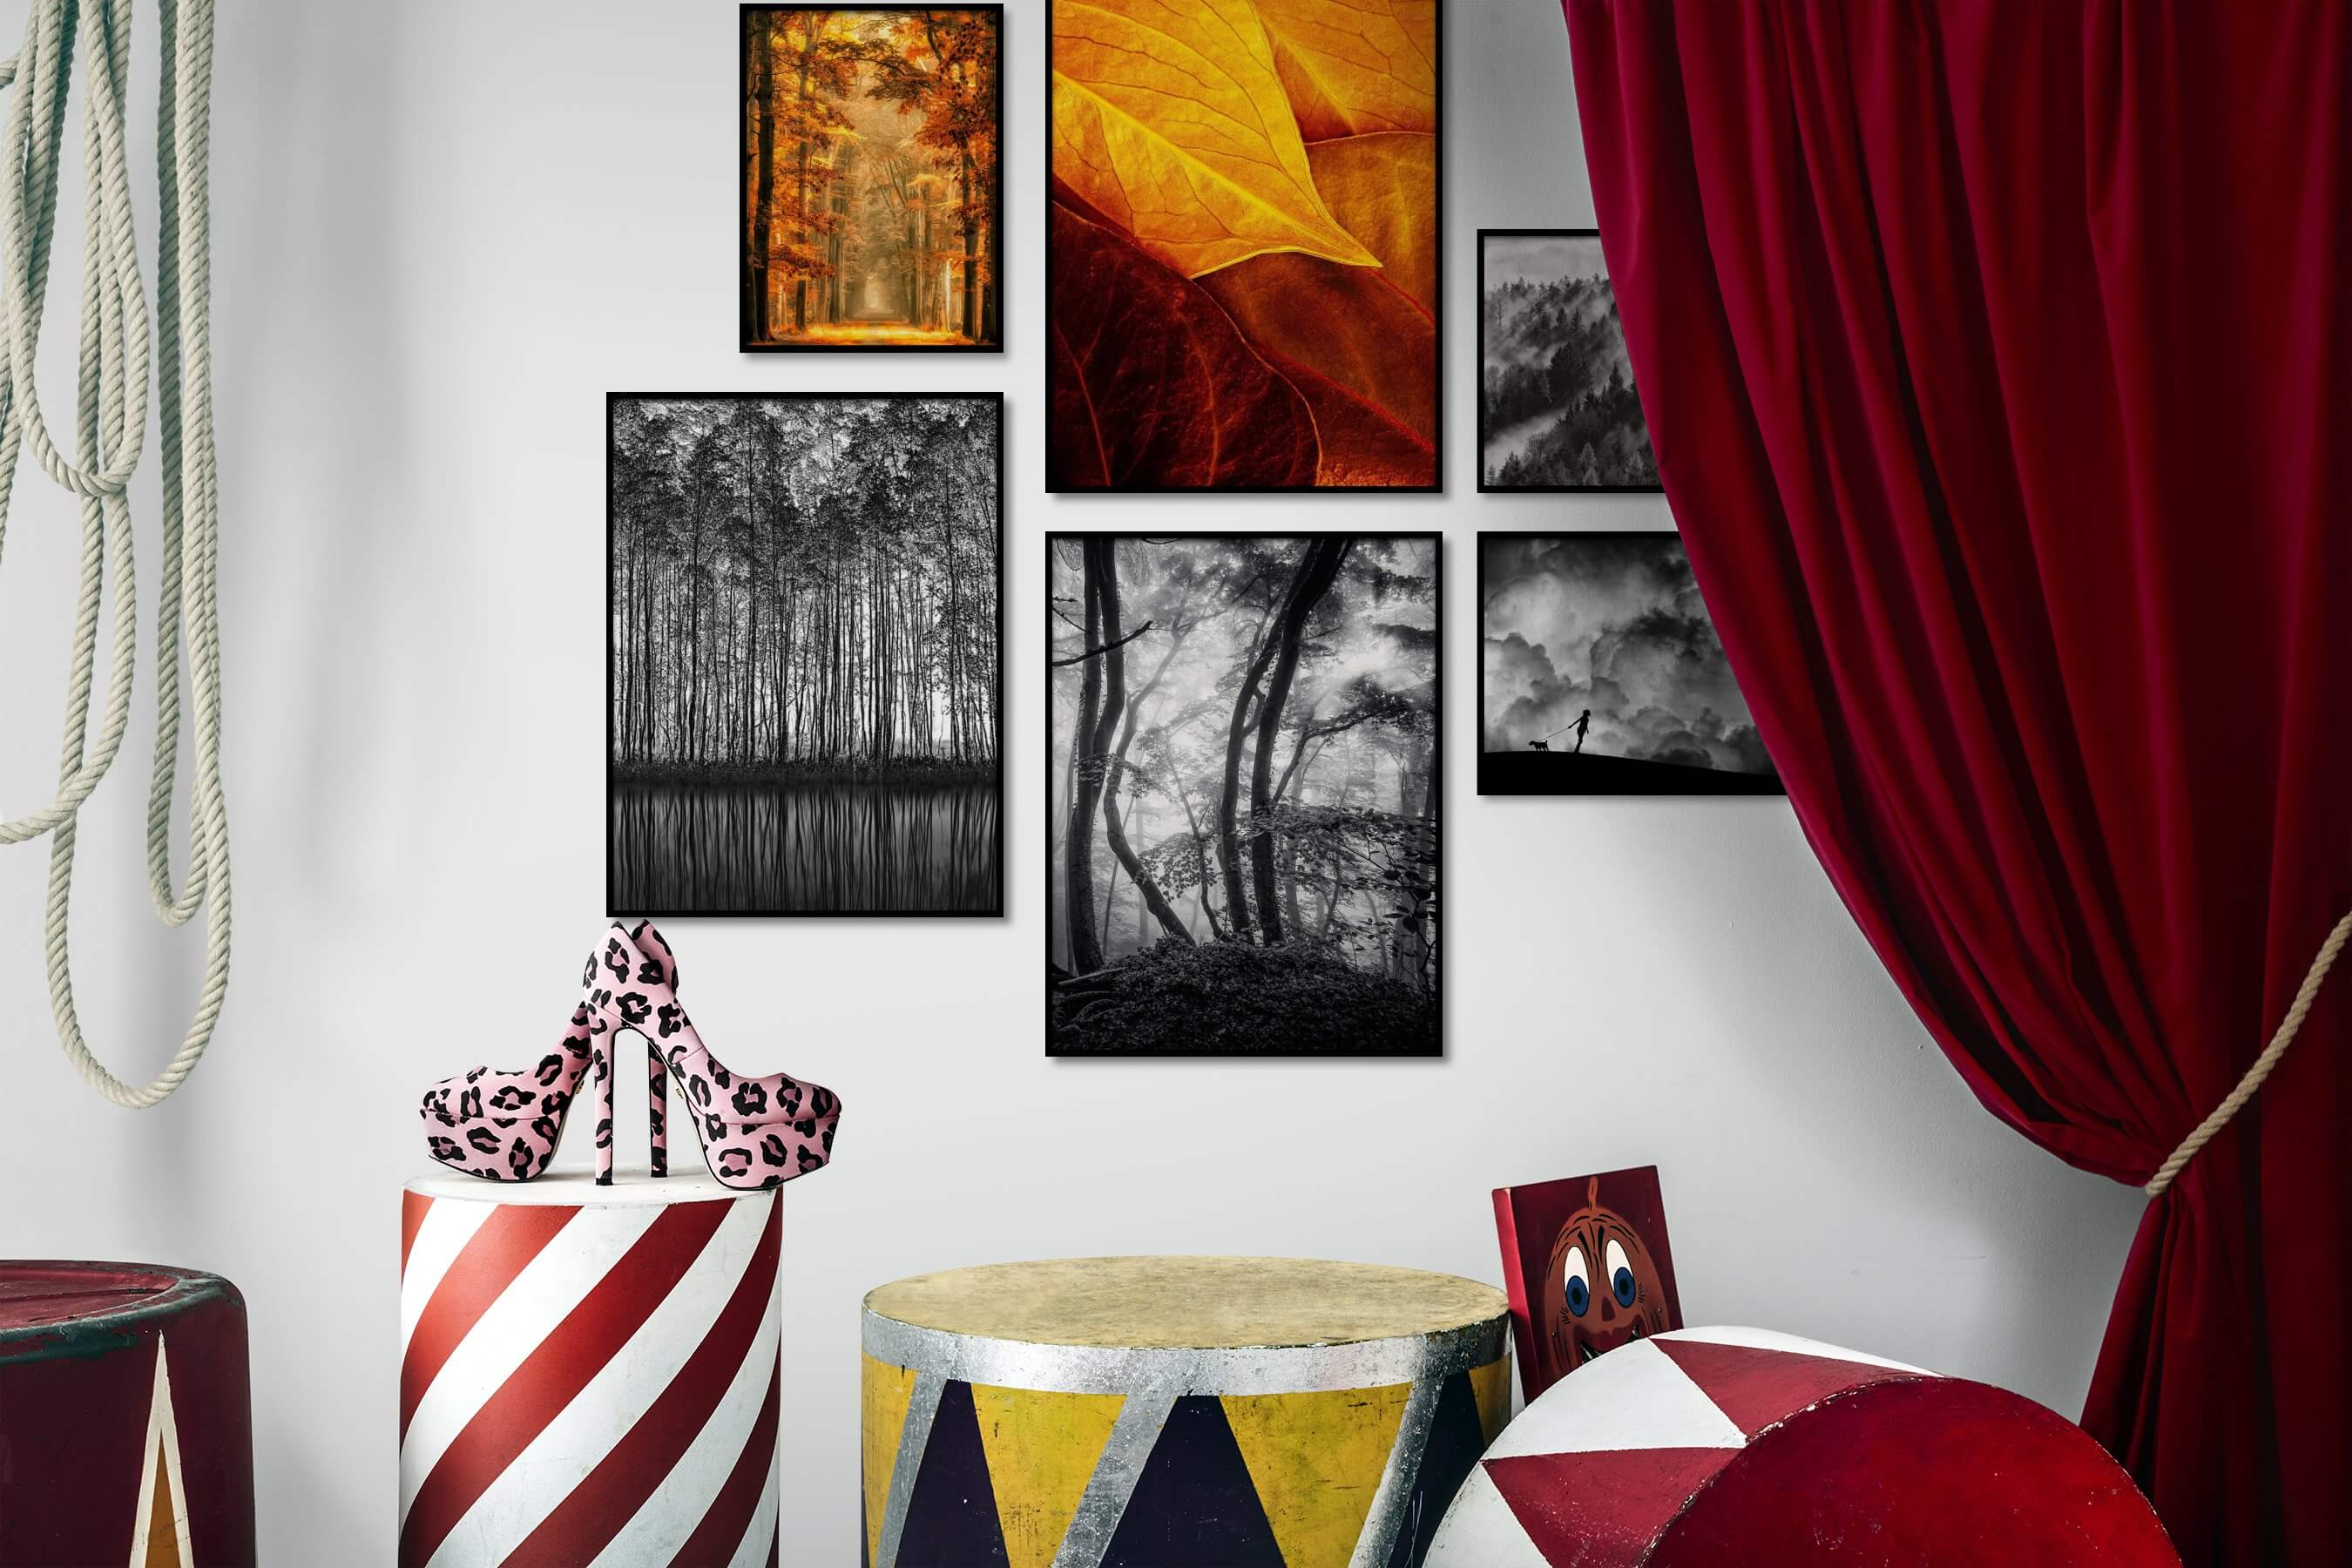 Gallery wall idea with six framed pictures arranged on a wall depicting Nature, Colorful, For the Moderate, Flowers & Plants, Black & White, For the Maximalist, Mindfulness, and Country Life